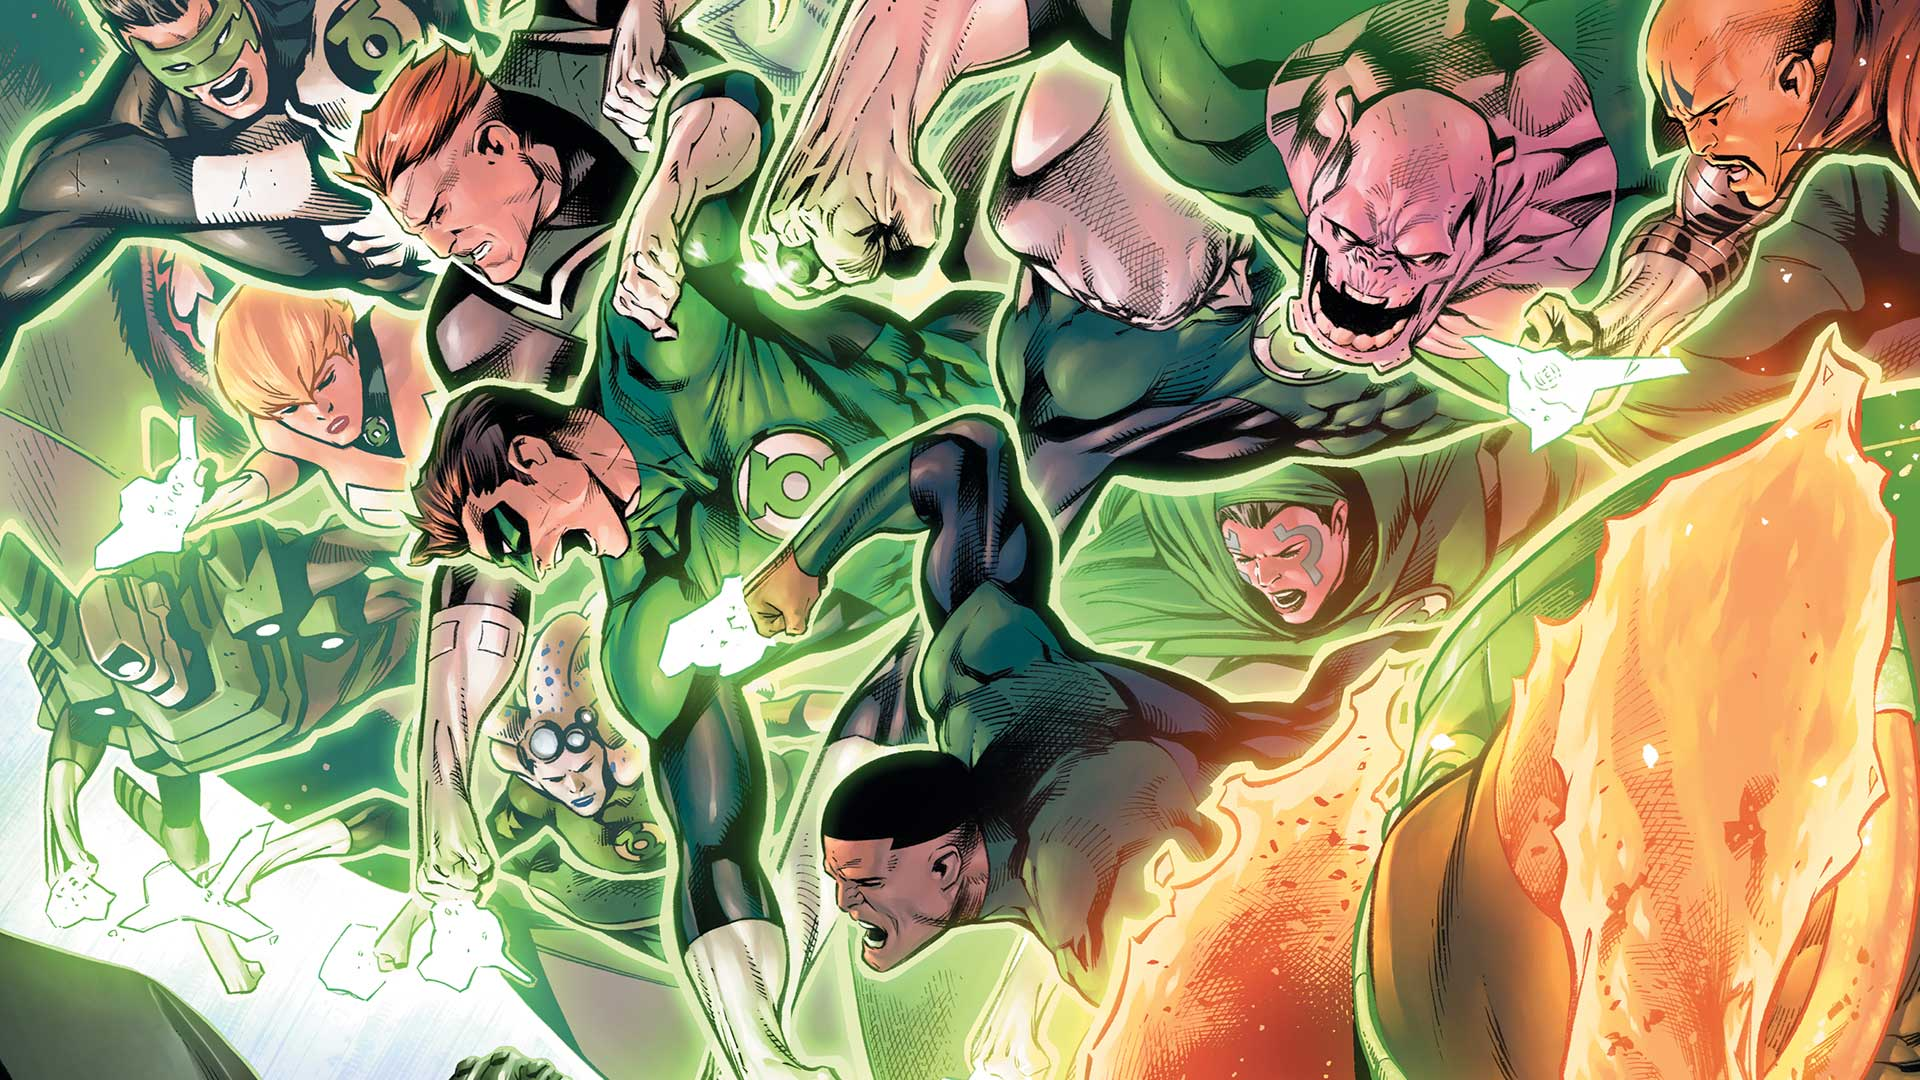 Image du numéro 39 du comic Hal Jordan and the Green Lantern Corps